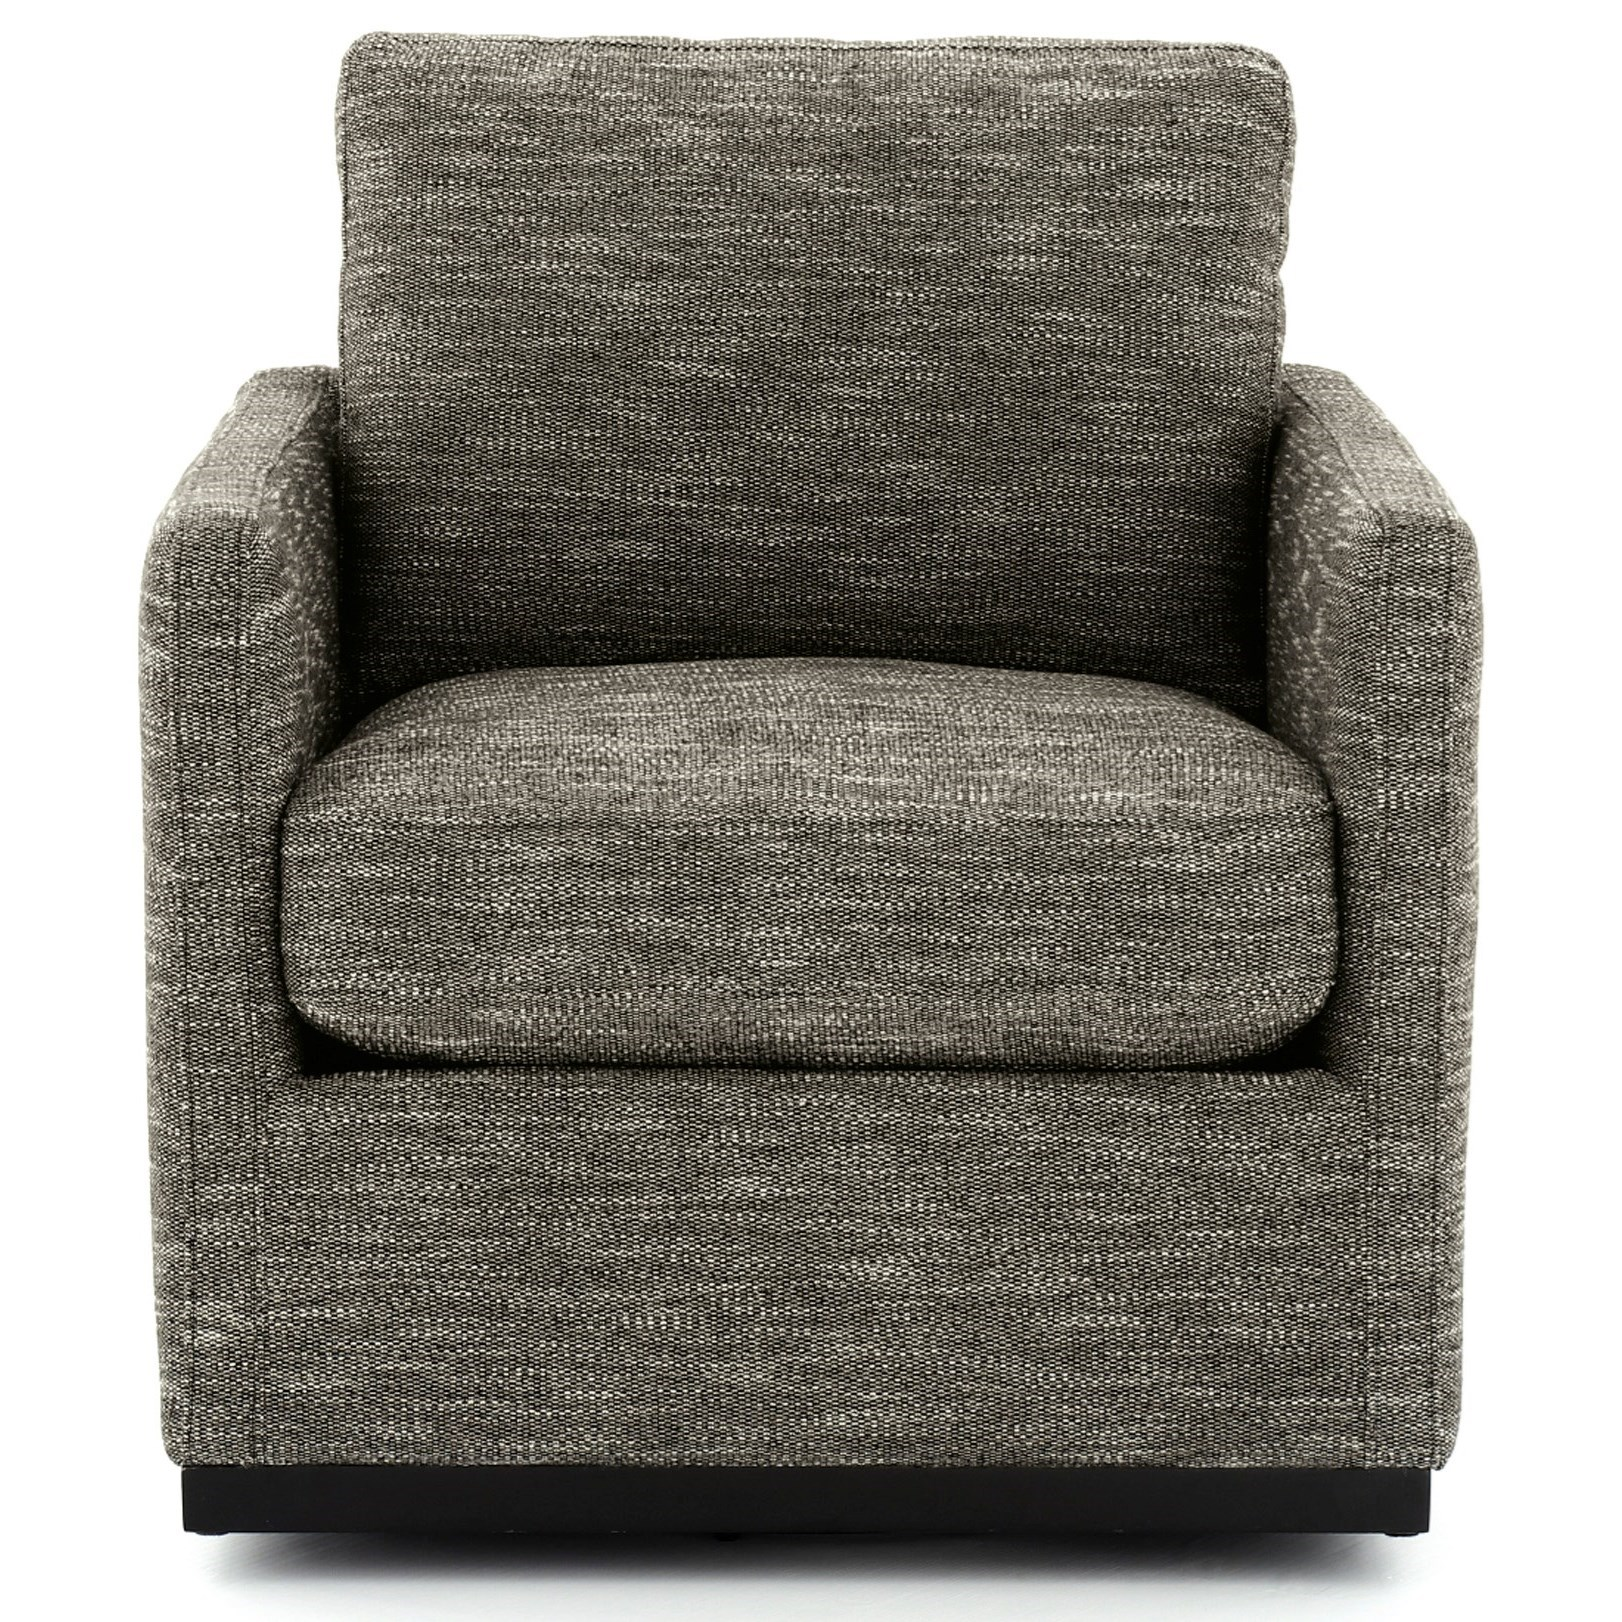 Grona Swivel Accent Chair by Signature Design by Ashley at Northeast Factory Direct